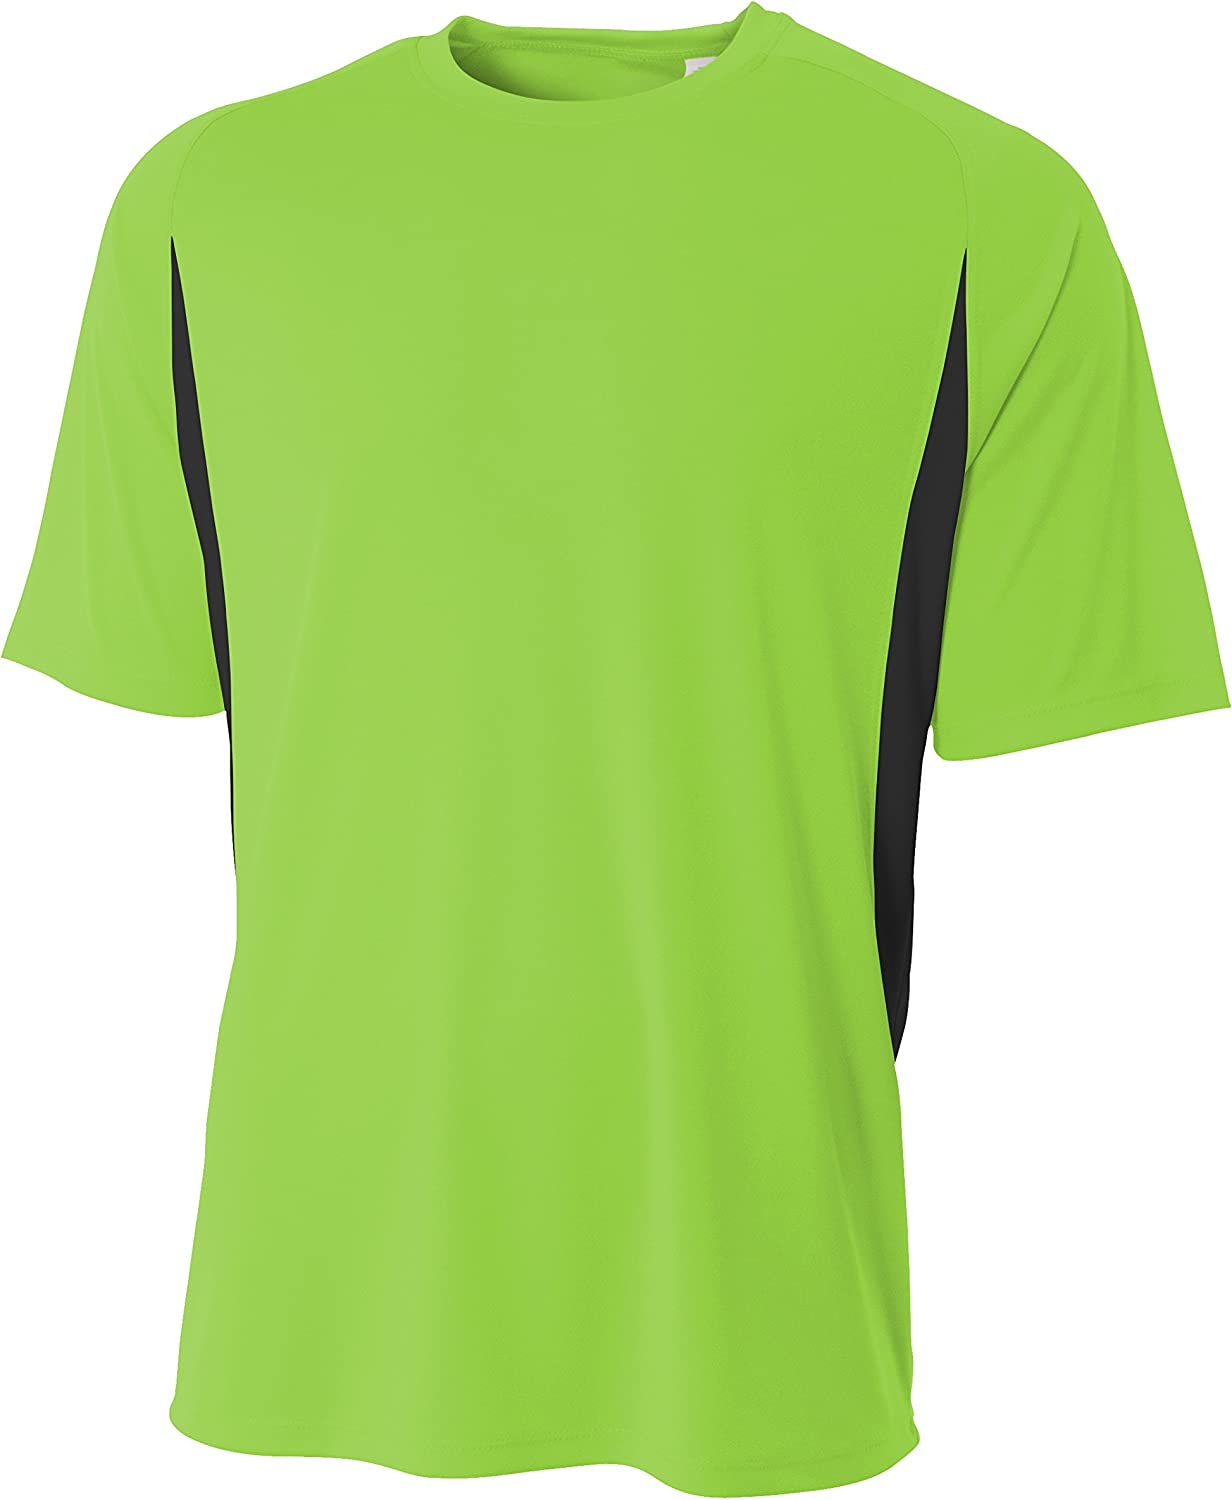 A4 Men's High-Performance Moisture-Wicking Color Block T-Shirt